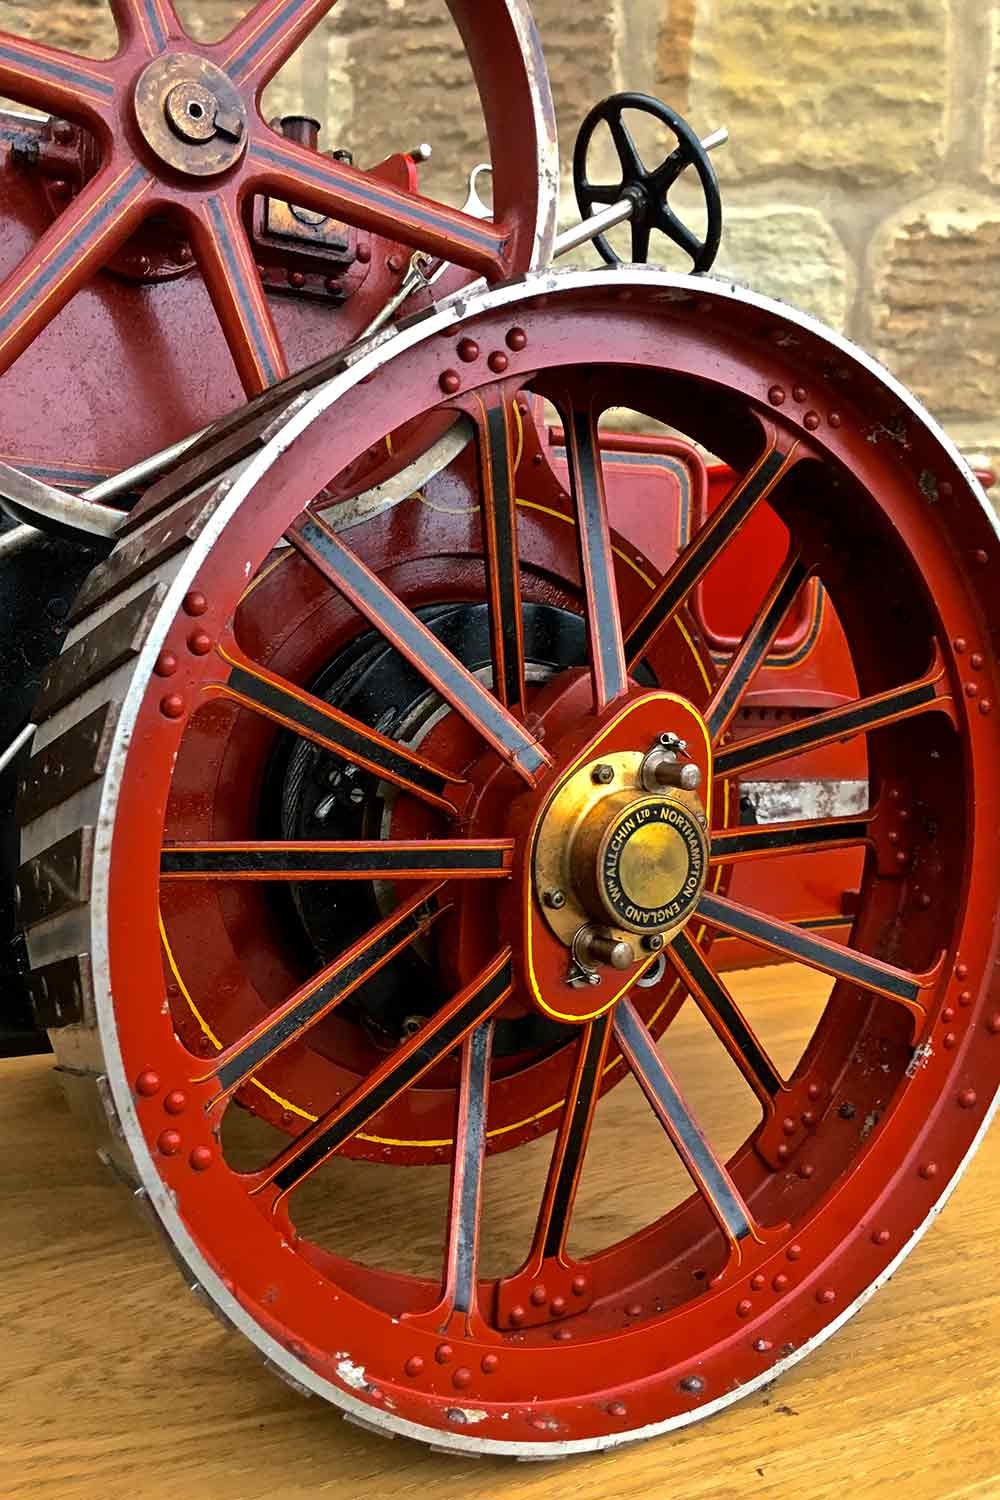 test Alchin-Traction-Engine-Royal-Chester-live-steam-model-for-sale